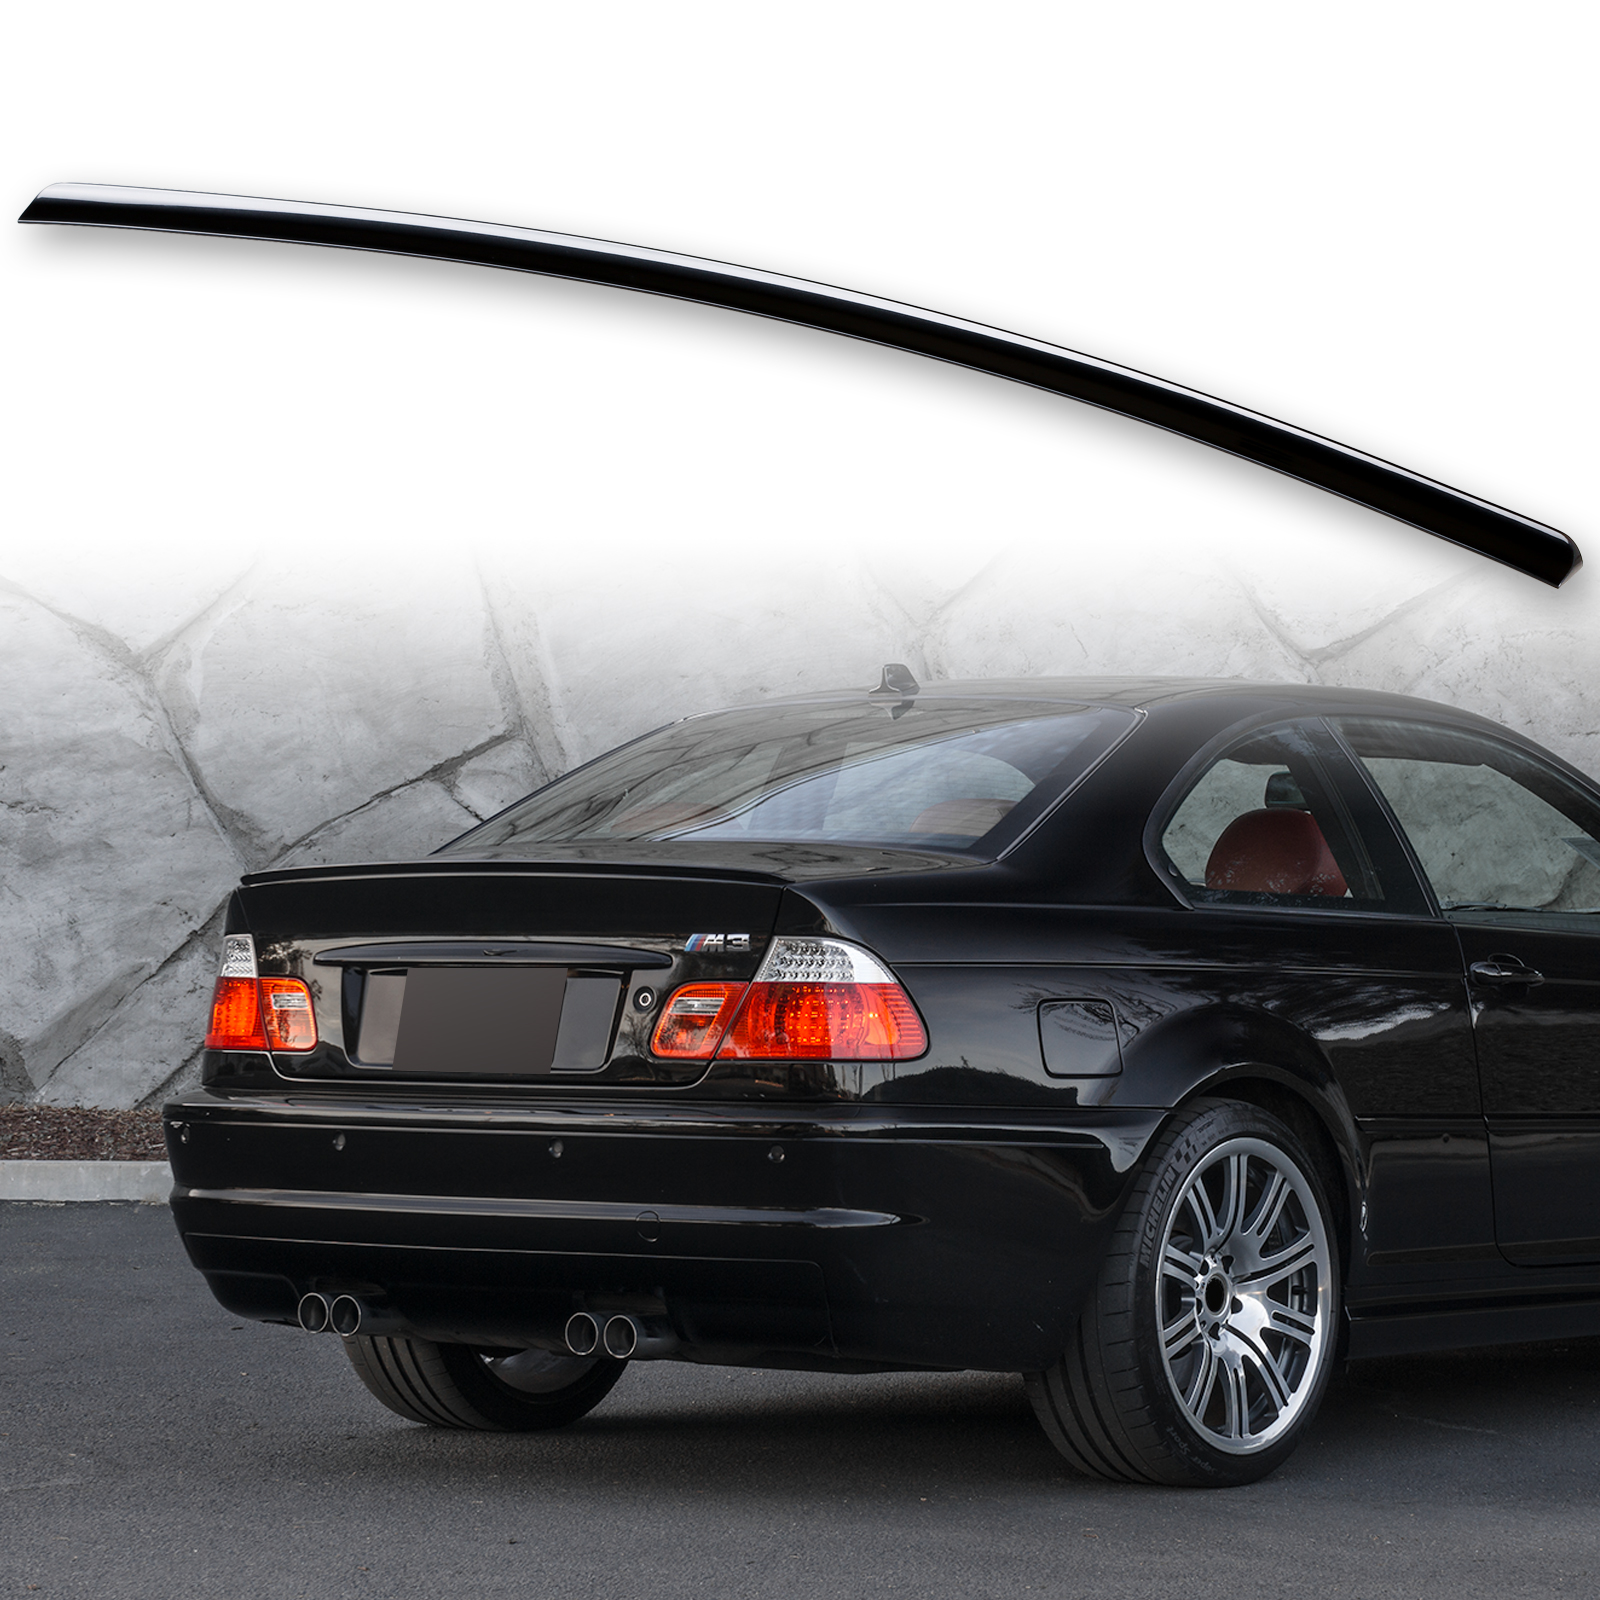 Painted Boot Lip Spoiler For Bmw 3 Series E46 Coupe 99 06 Black Sapphire 475 Ebay